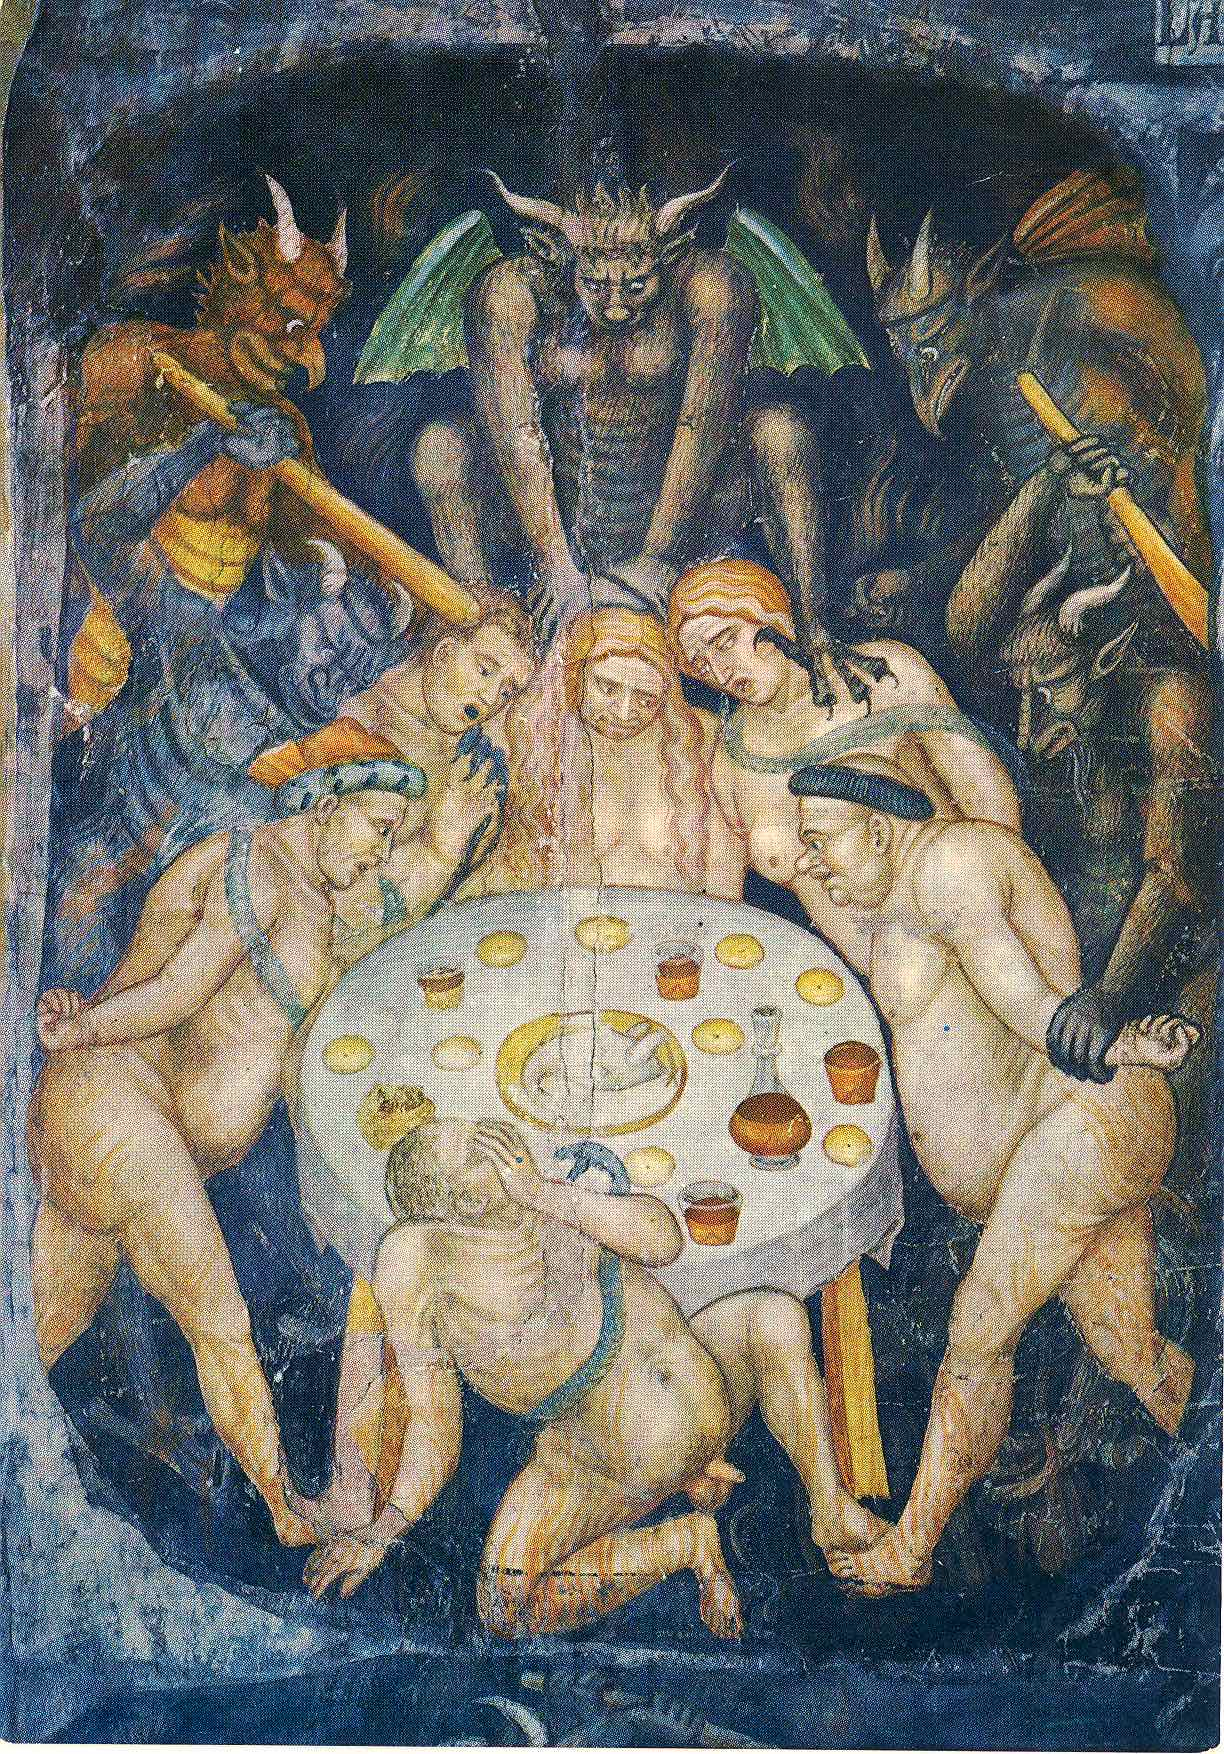 taddeo-di-bartolo-the-last-judgment-punishment-of-gluttony-c-1394